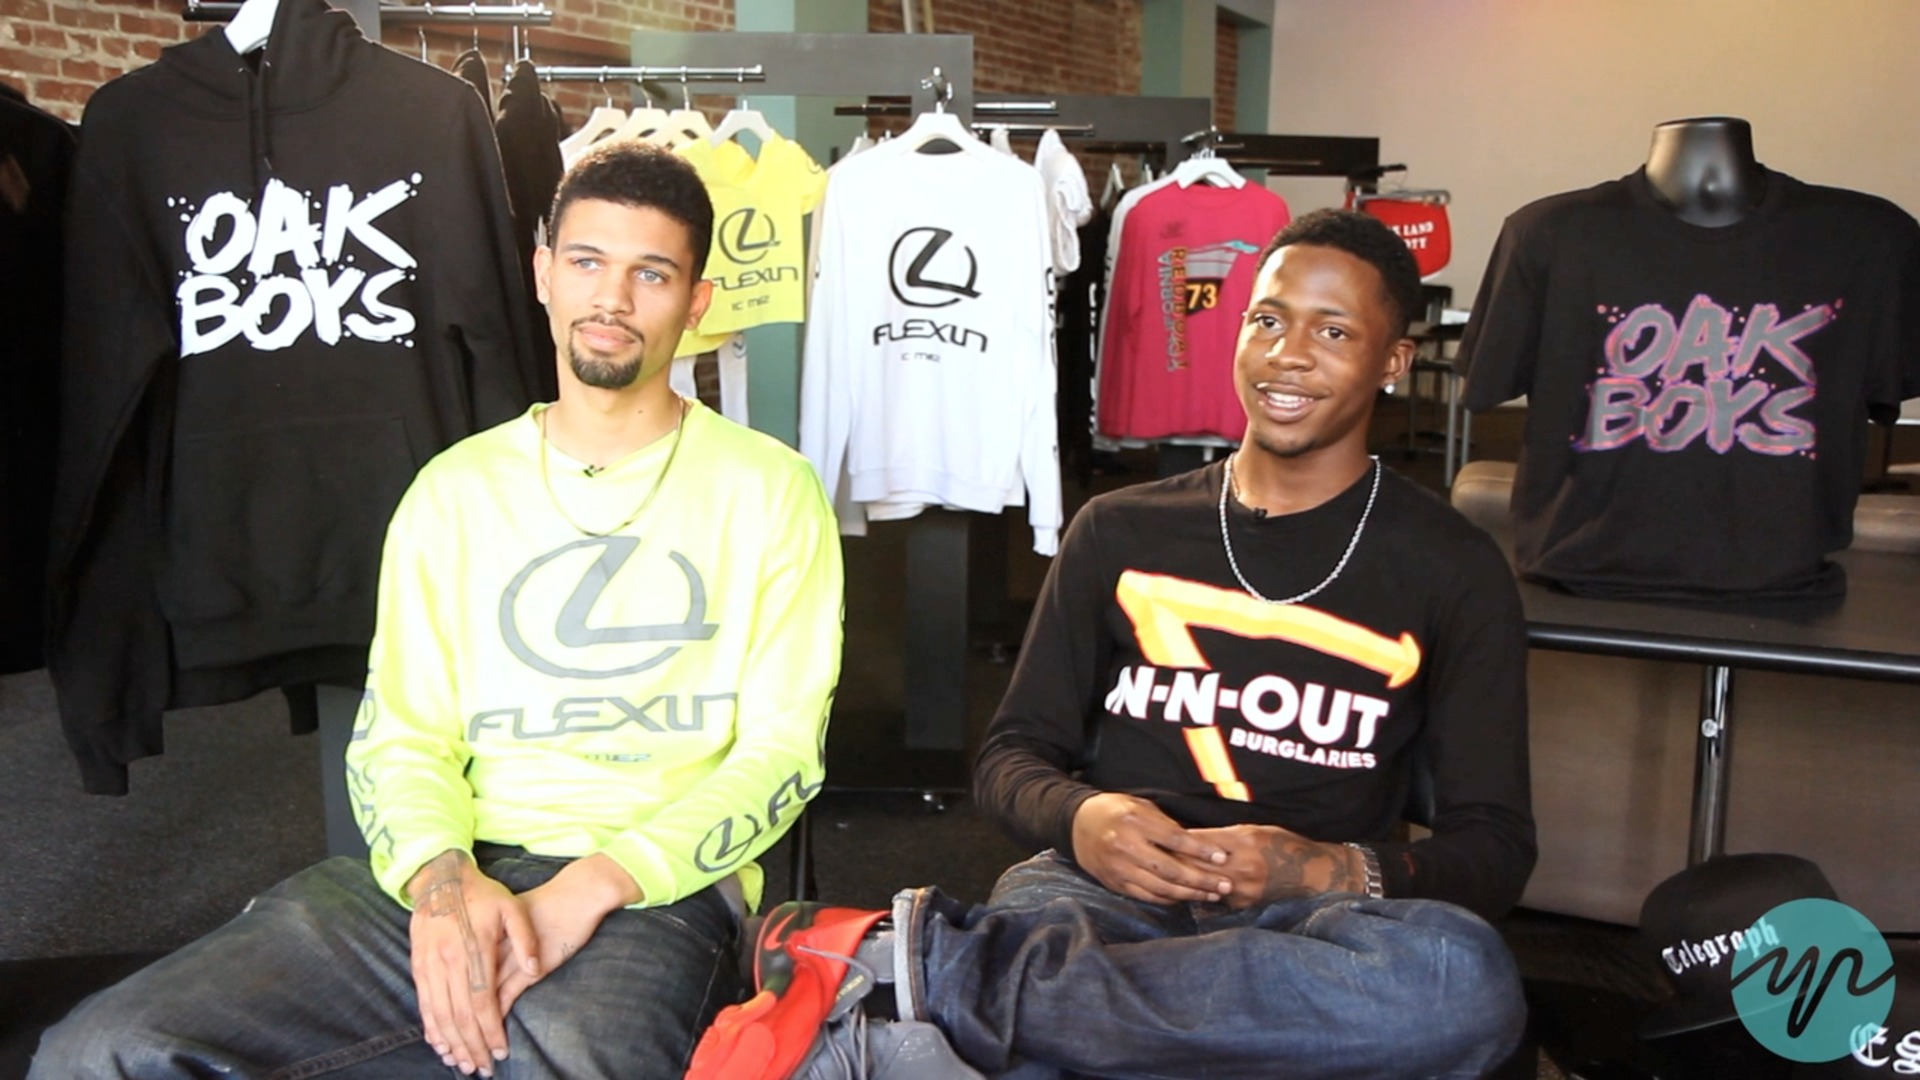 Torron Thompson (left) and Khalil Whitaker (right) design t-shirts, sweats and shorts with funny logos under the brand Oak Boys.